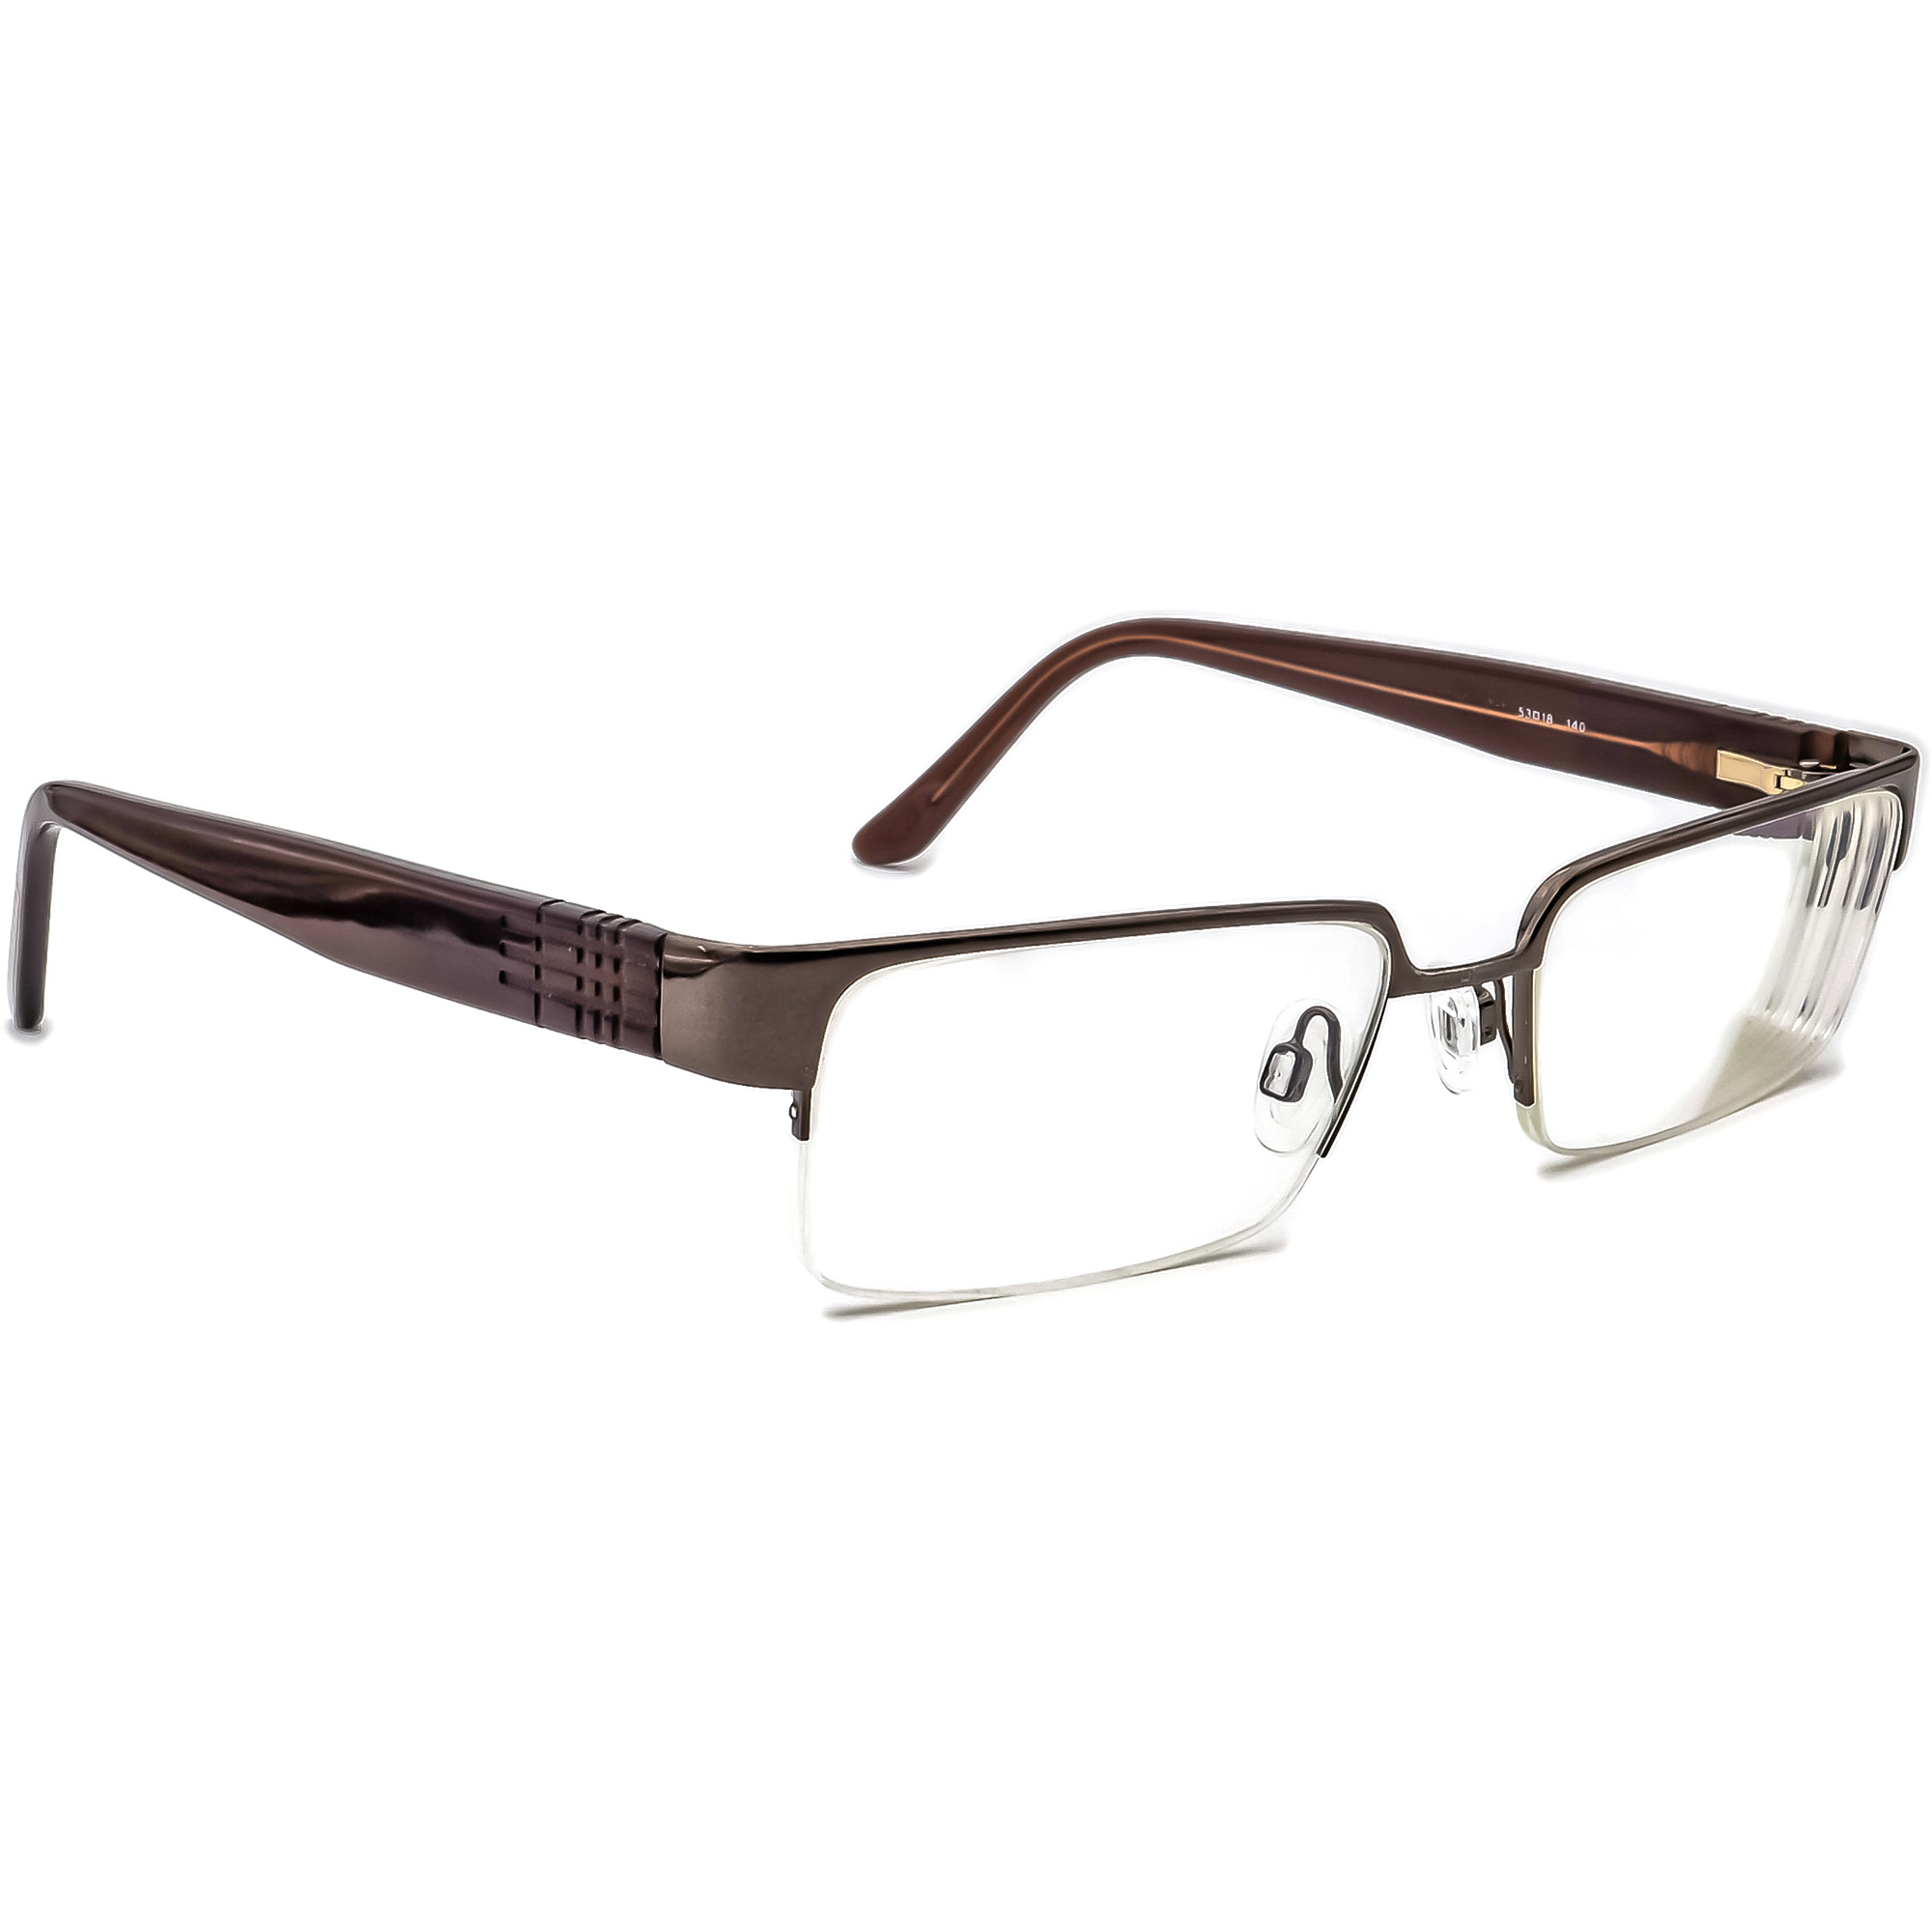 Burberry B 1110 031 Eyeglasses